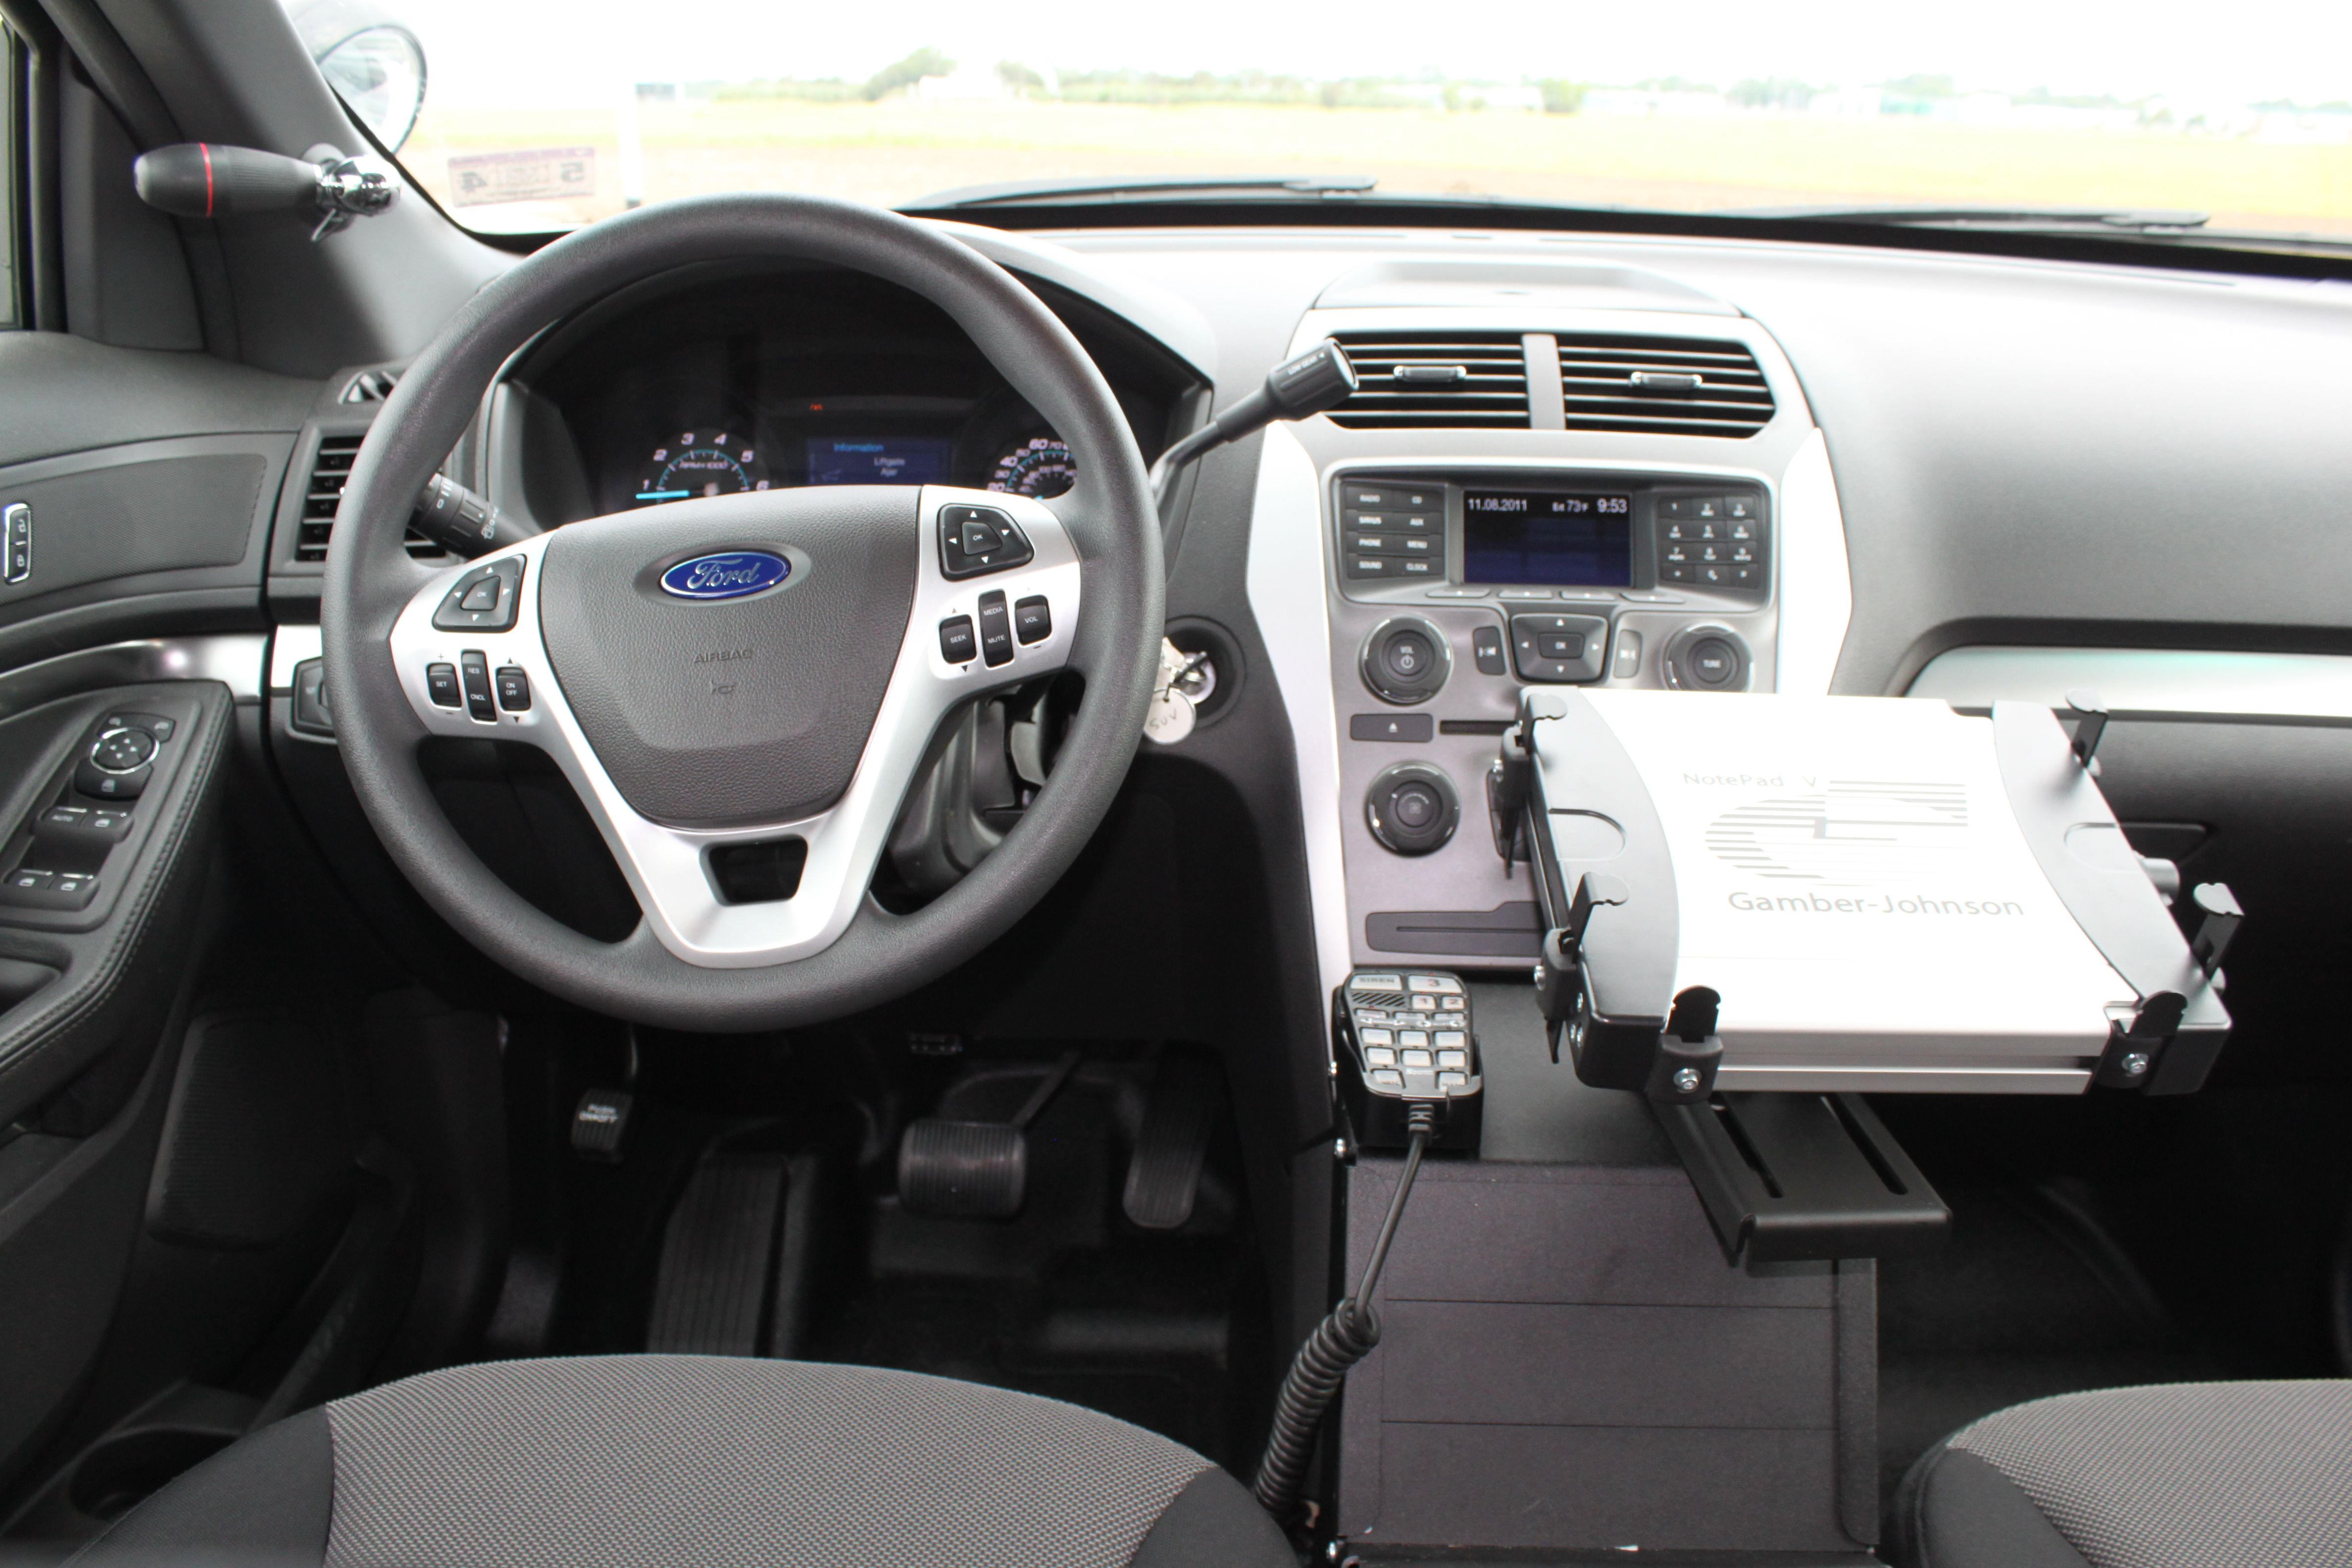 2013 Ford Police Interceptor Suv Dash View Ford Police Bug